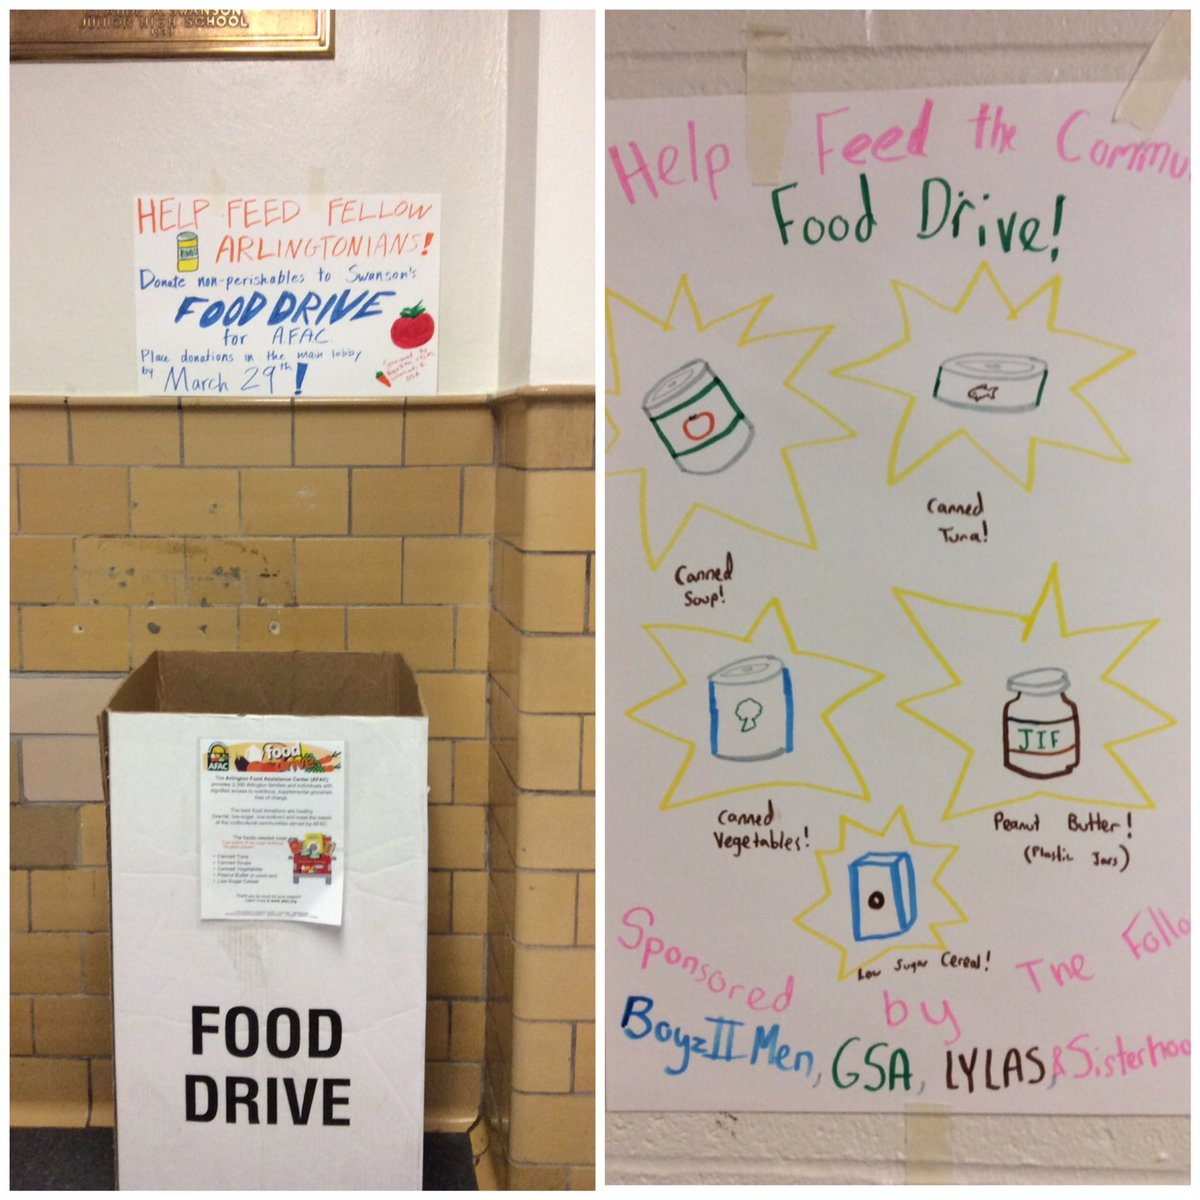 Please consider donating to our Food Drive! <a target='_blank' href='https://t.co/i0mLjNPLh4'>https://t.co/i0mLjNPLh4</a>